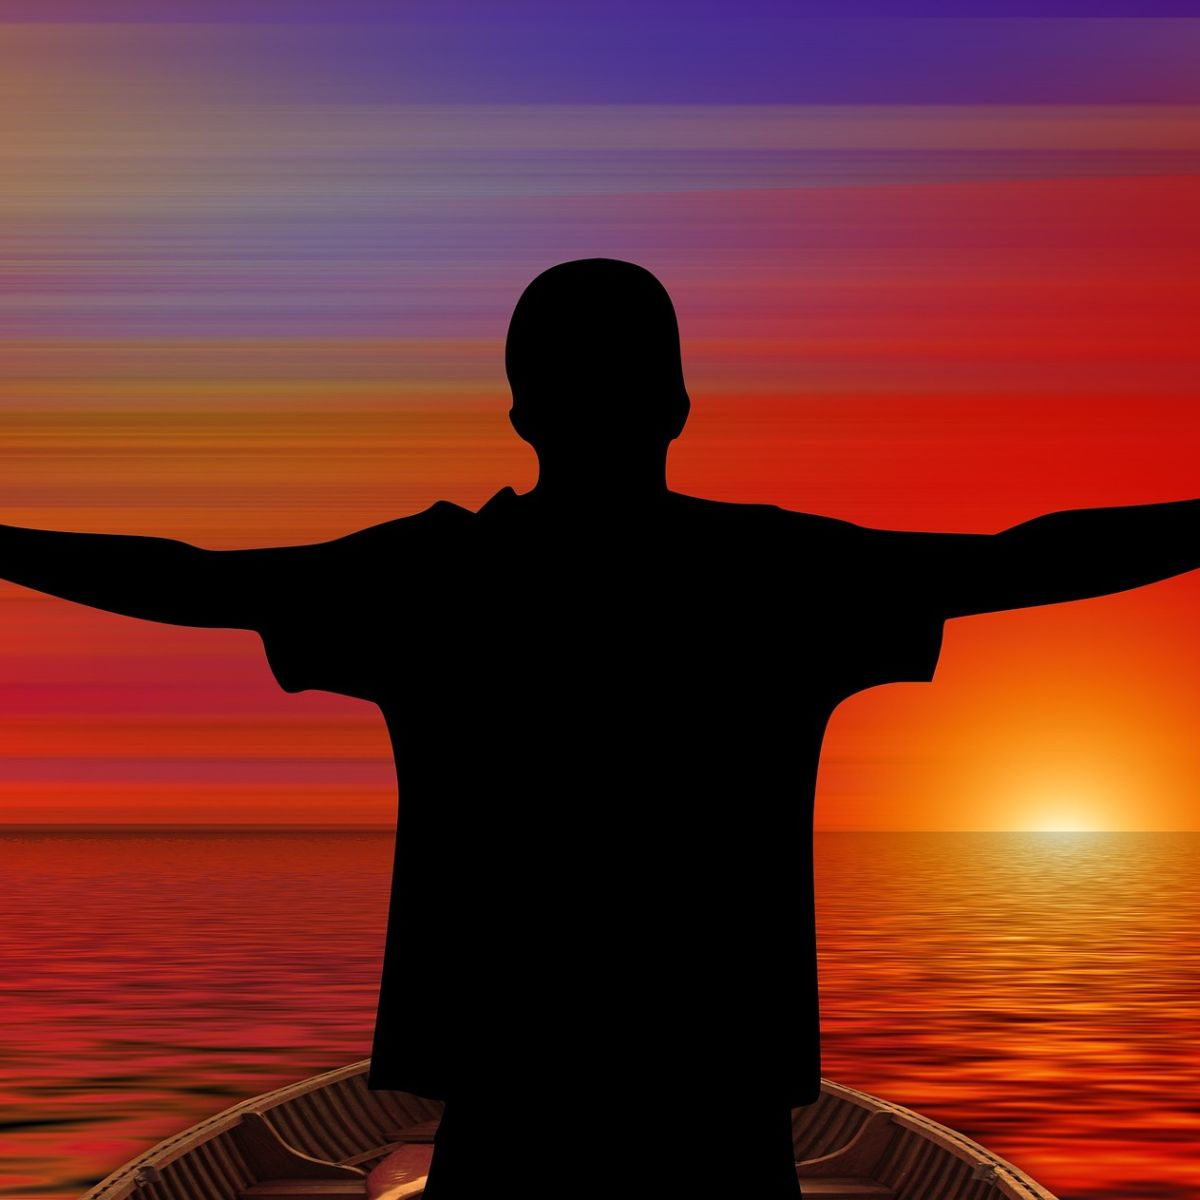 Man on boat welcoming sunrise with open arms